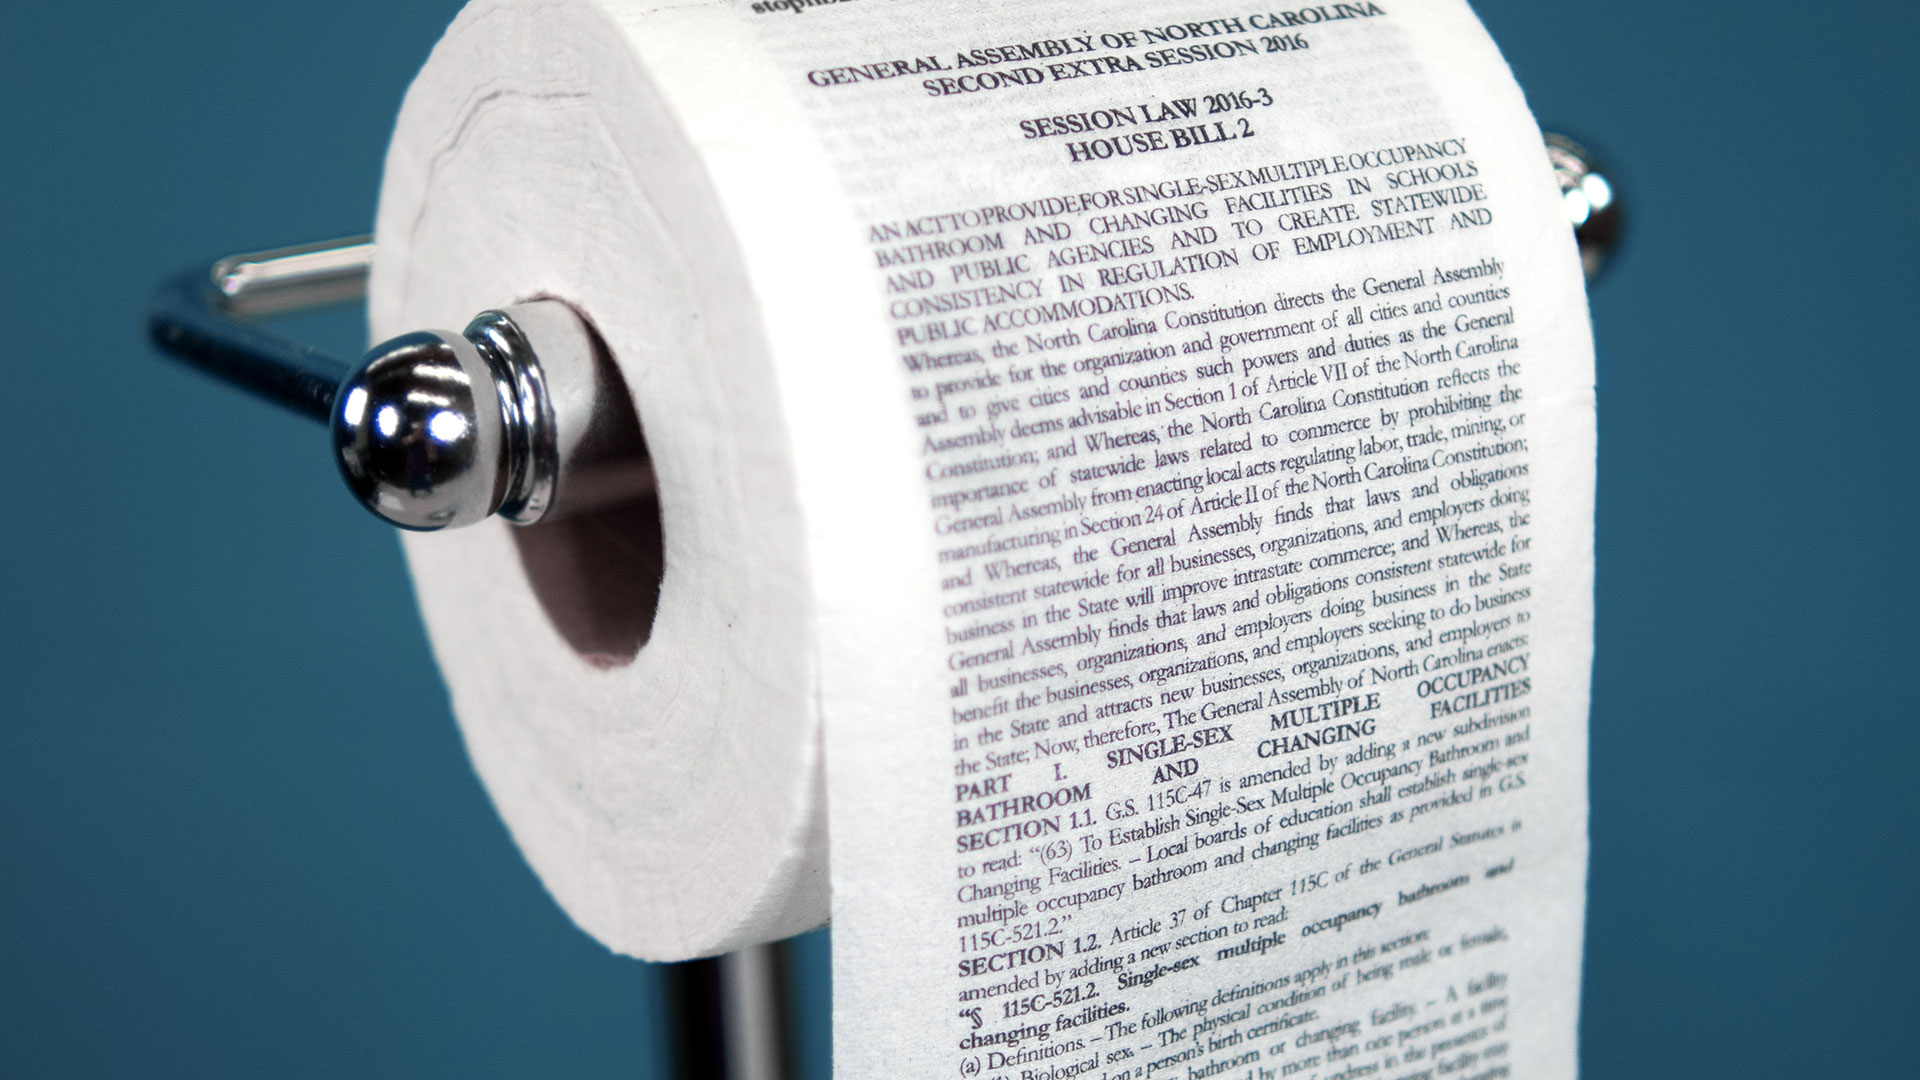 McKinney Printed NCs Bathroom Bill on Toilet Paper You